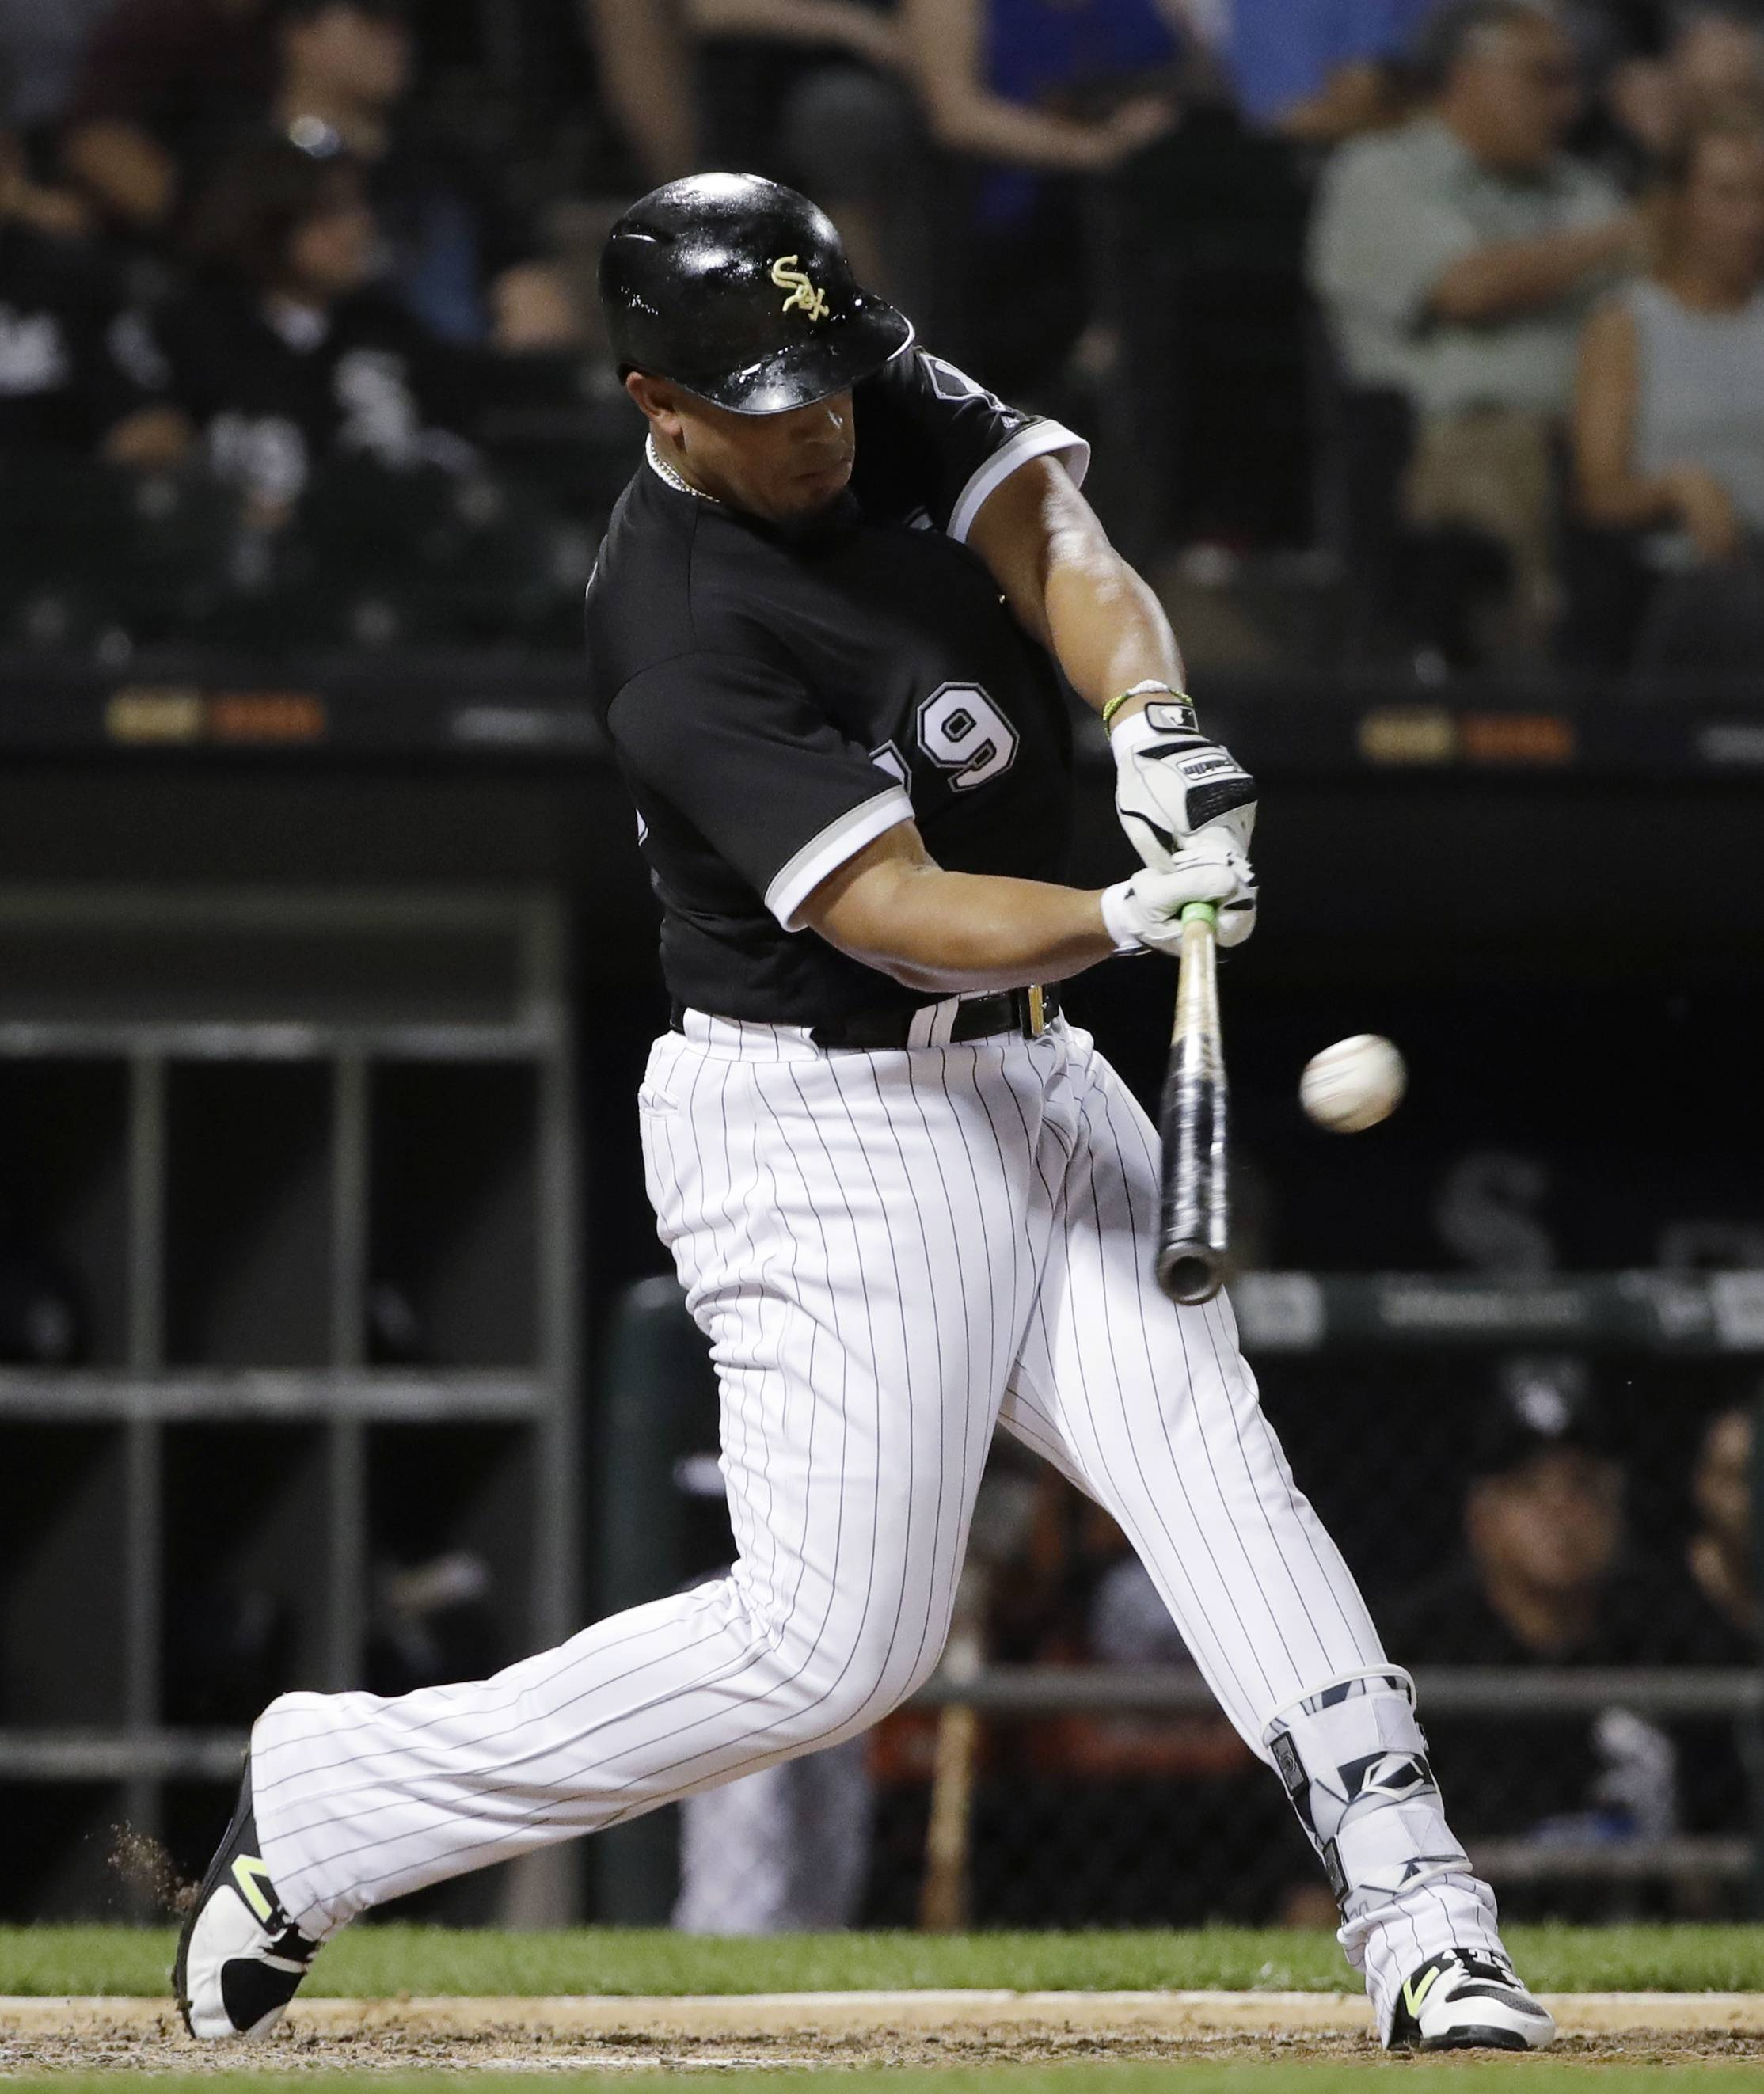 Chicago White Sox's Jose Abreu hits a solo home run against the Kansas City Royals during the sixth inning of a baseball game Friday, July 13, 2018, in Chicago. (AP Photo/Nam Y. Huh)